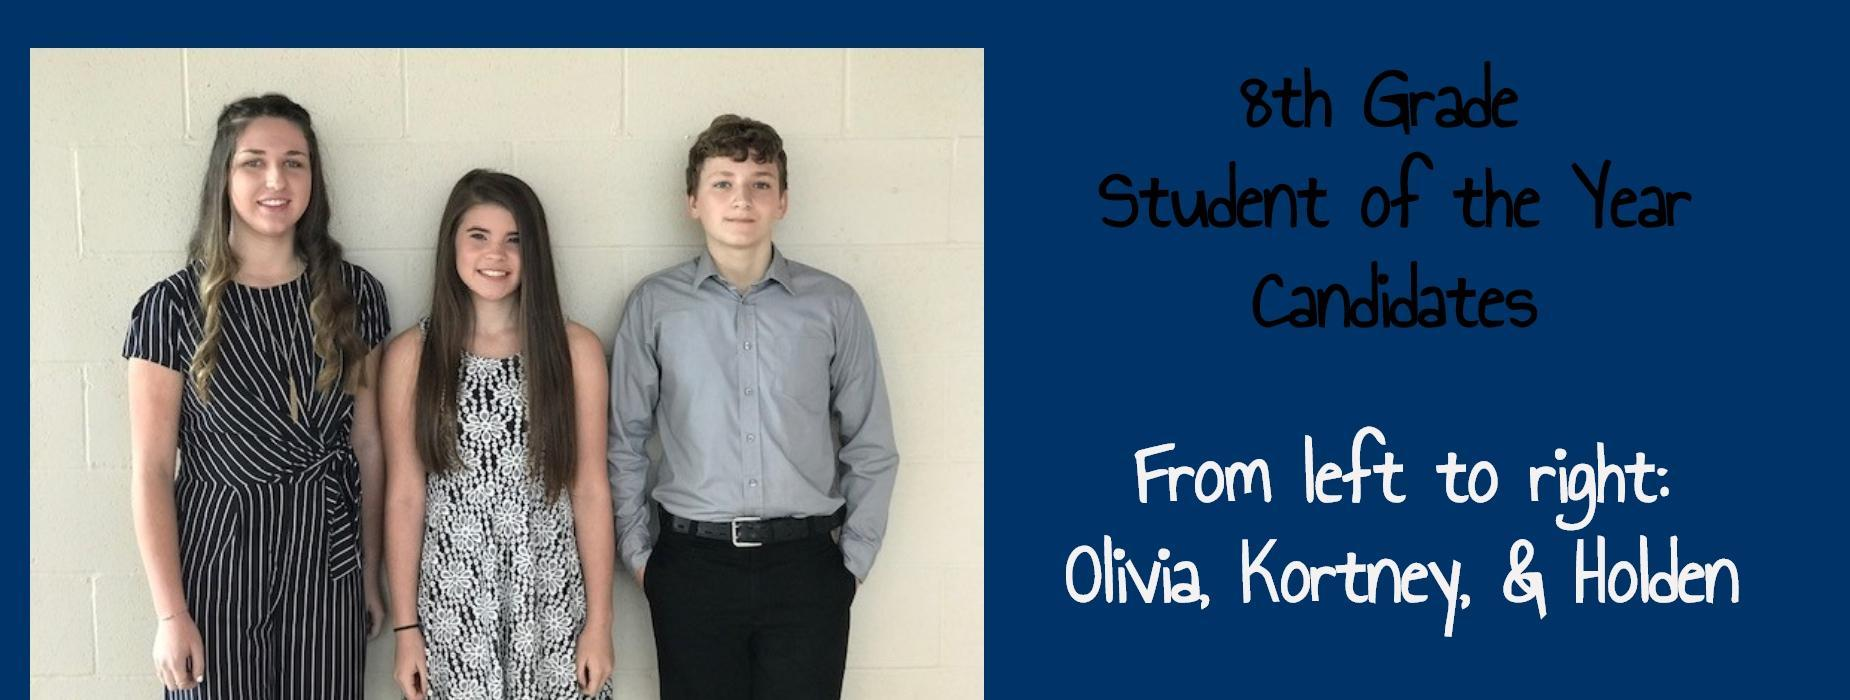 8th Grade Student of the Year Candidates